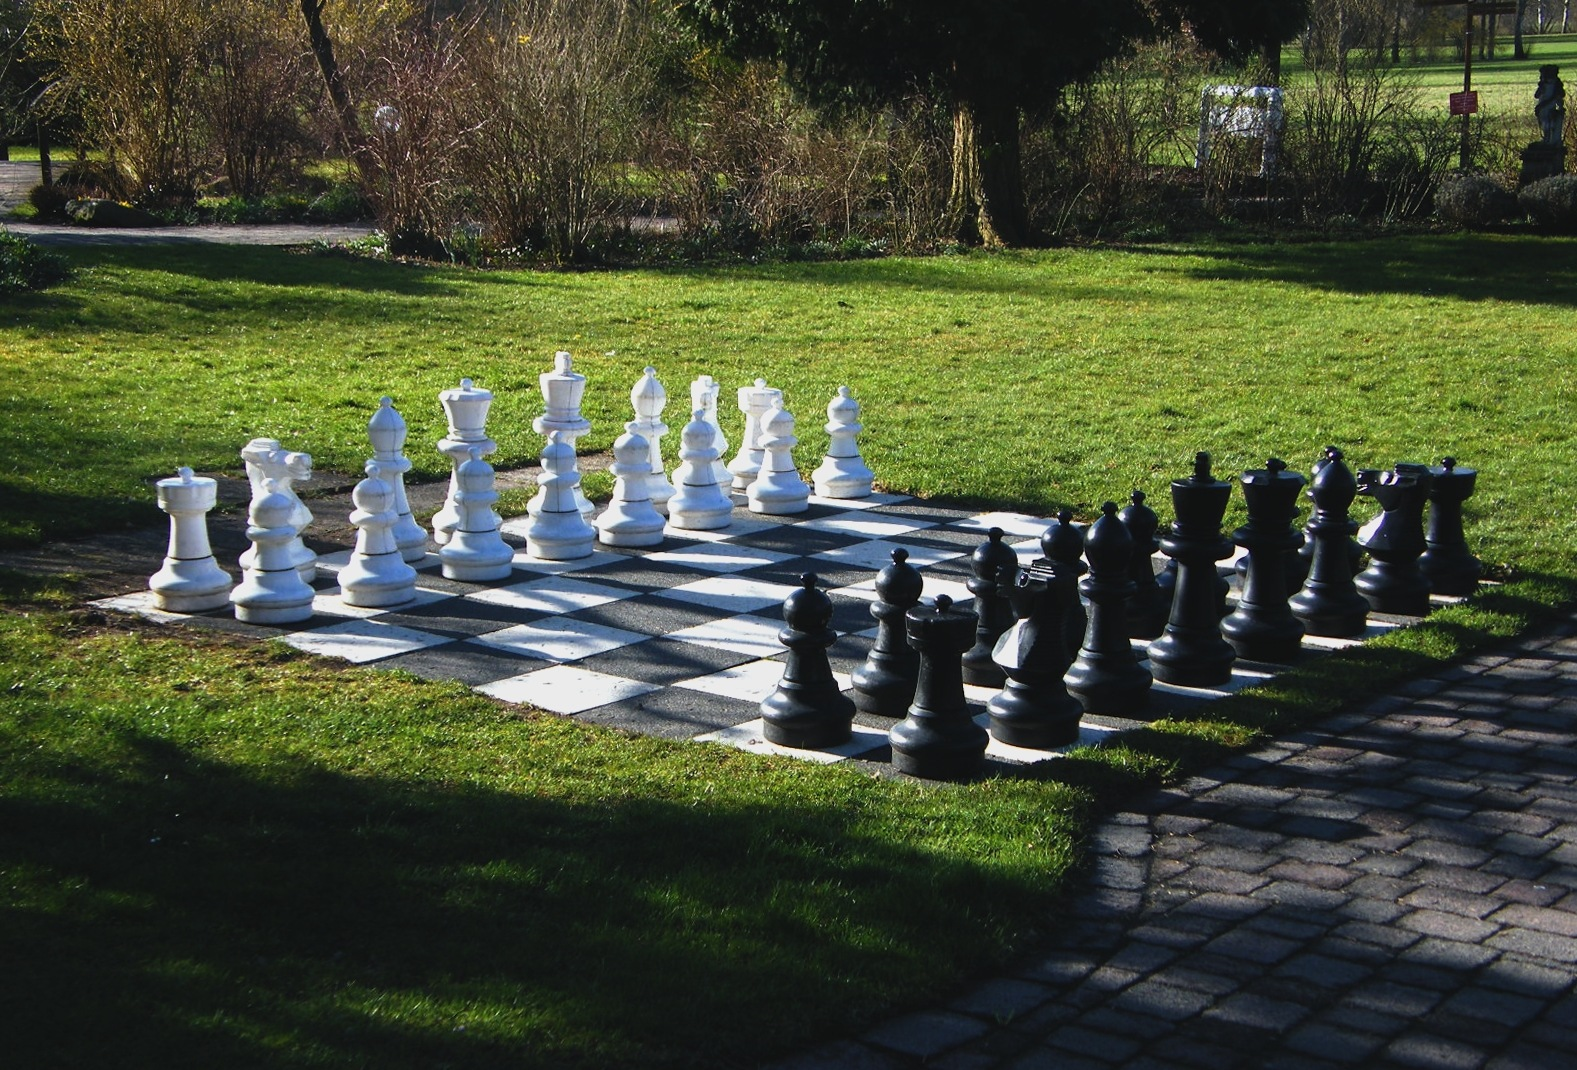 Chess in the Morning by Wolfgang Schmid